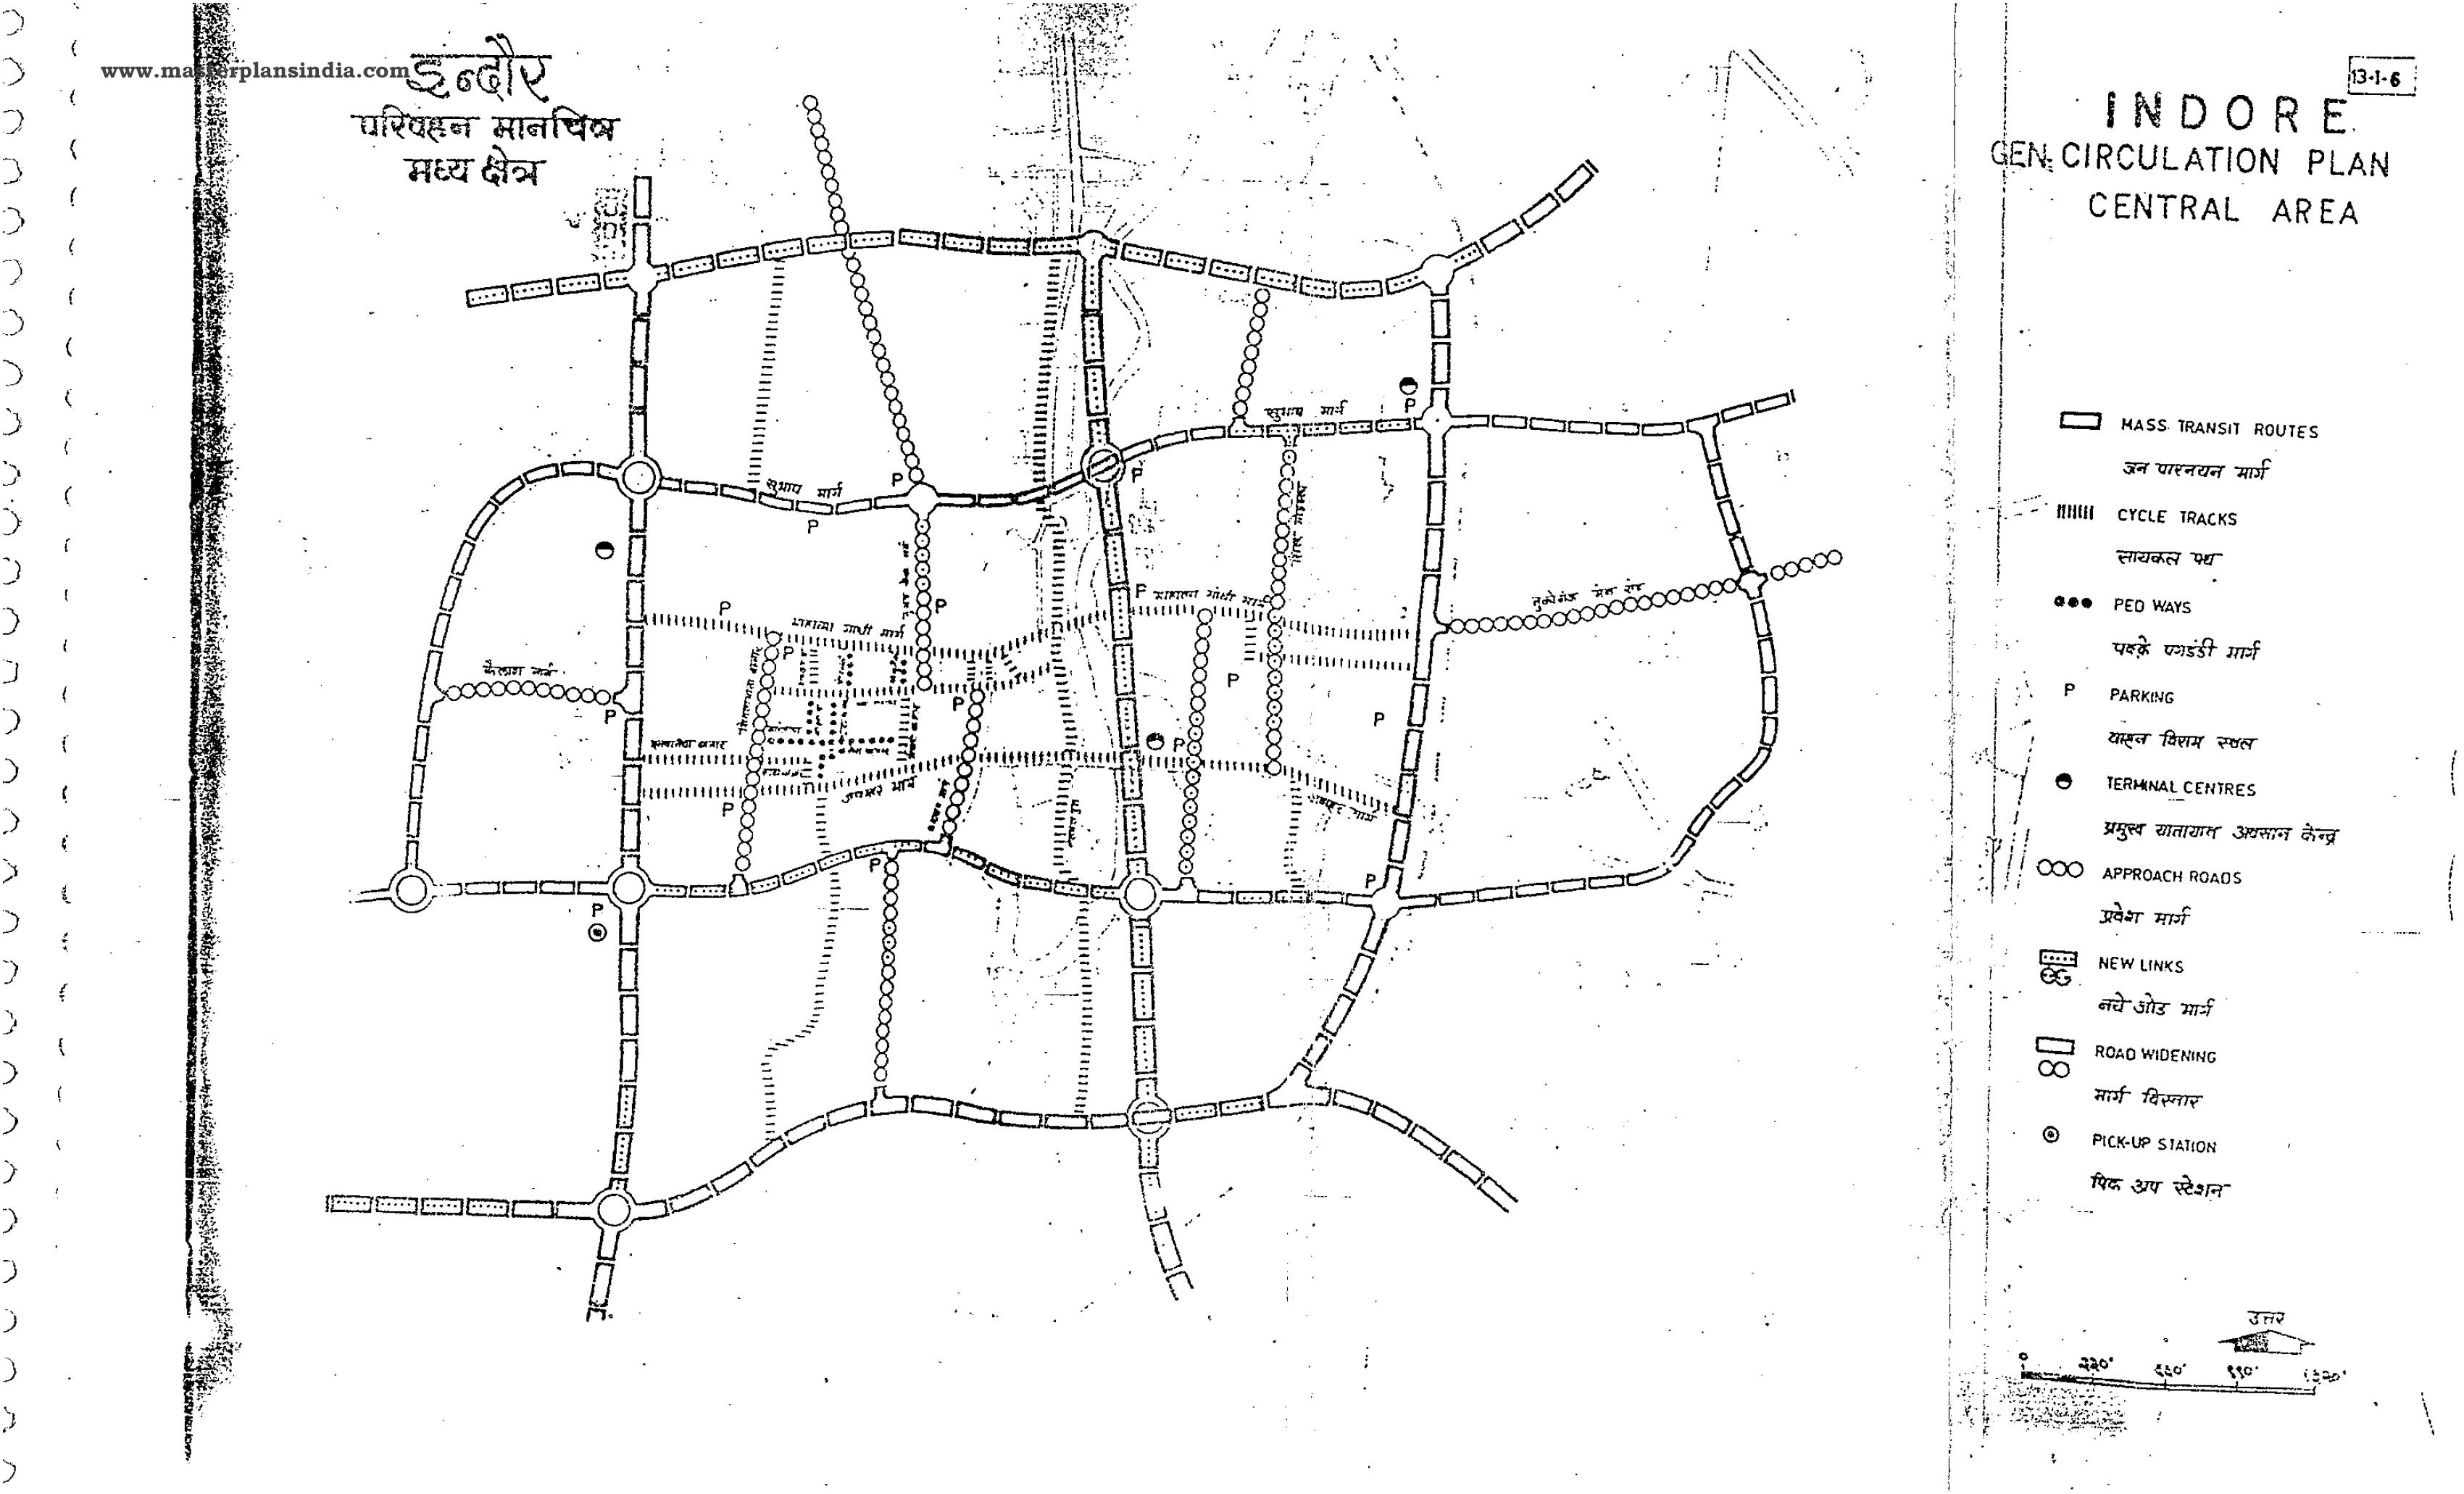 Indore Generalised Circulation Plan Central Area Map PDF